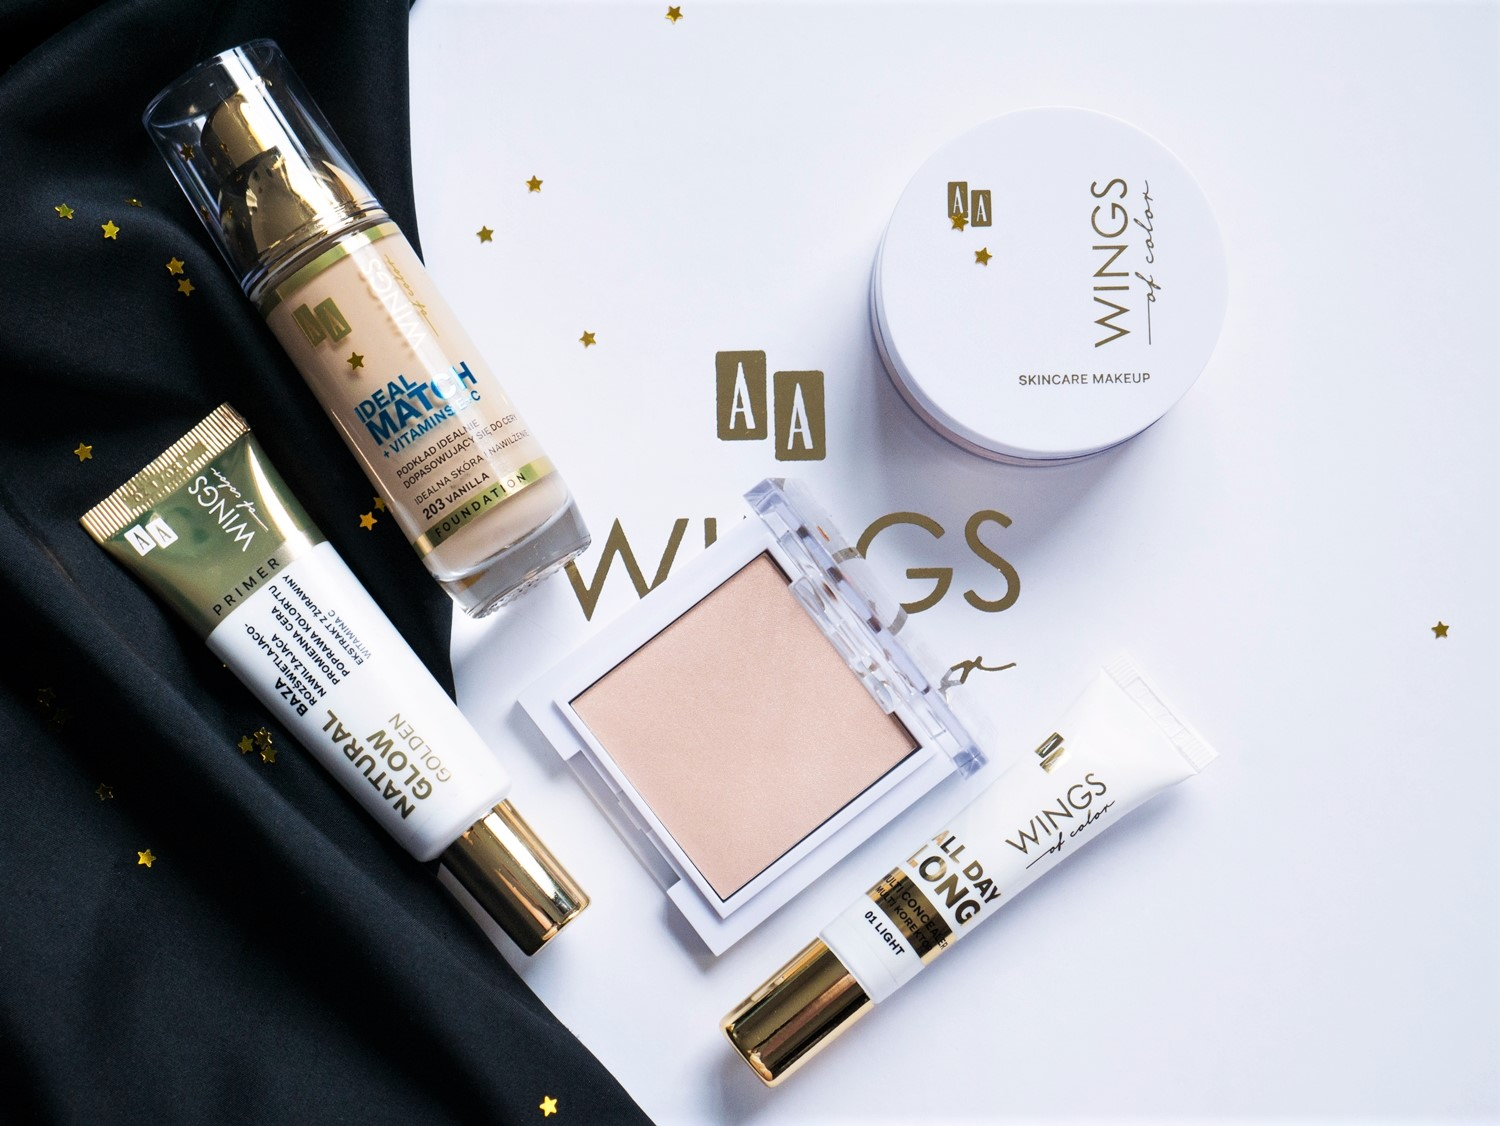 AA Wings of Color | 5 kosmetyków wartych wypróbowania Baza rozświetlająco - nawilżająca Natural Glow Golden, podkład Ideal Match, korektor All Day Long Multi Concealer, puder 100% Mineral Loose Powder, Efektowny rozświetlacz do modelowania Precious White Gold